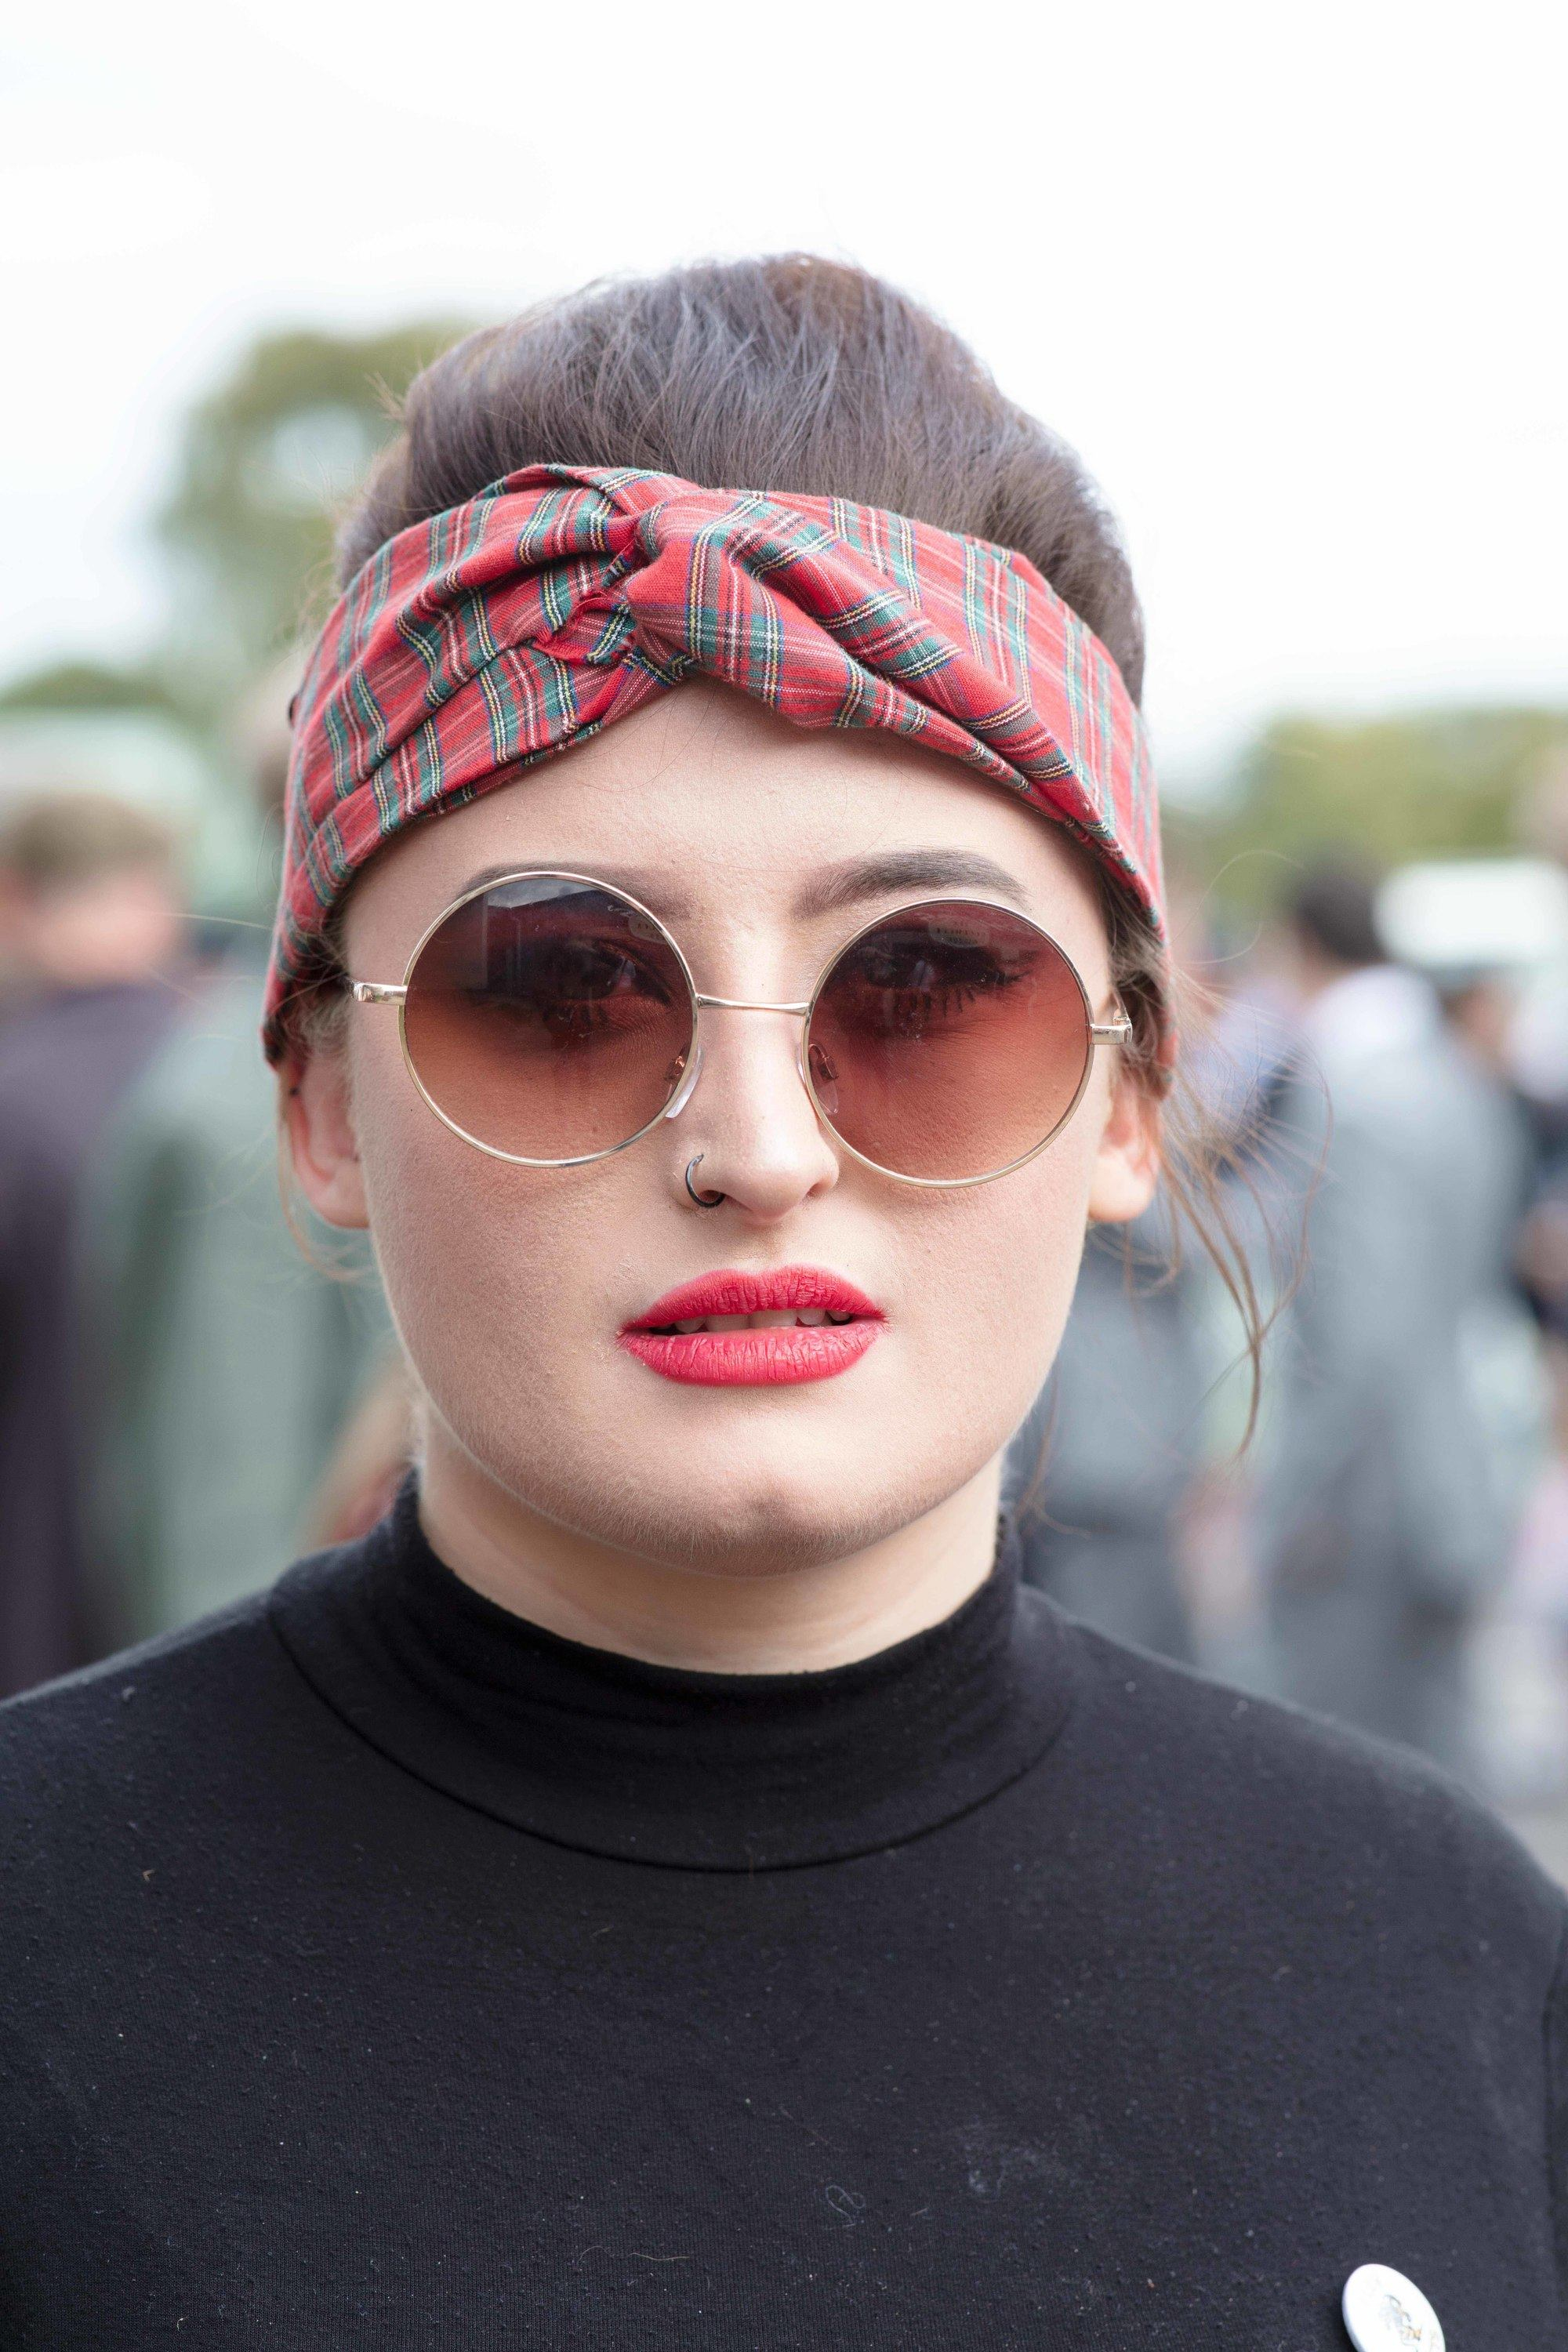 Retro hairstyles: Close up shot of a woman with dark brown hair styled into a beehive updo with a headwrap, wearing black and John Lennon style glasses at Goodwood festival